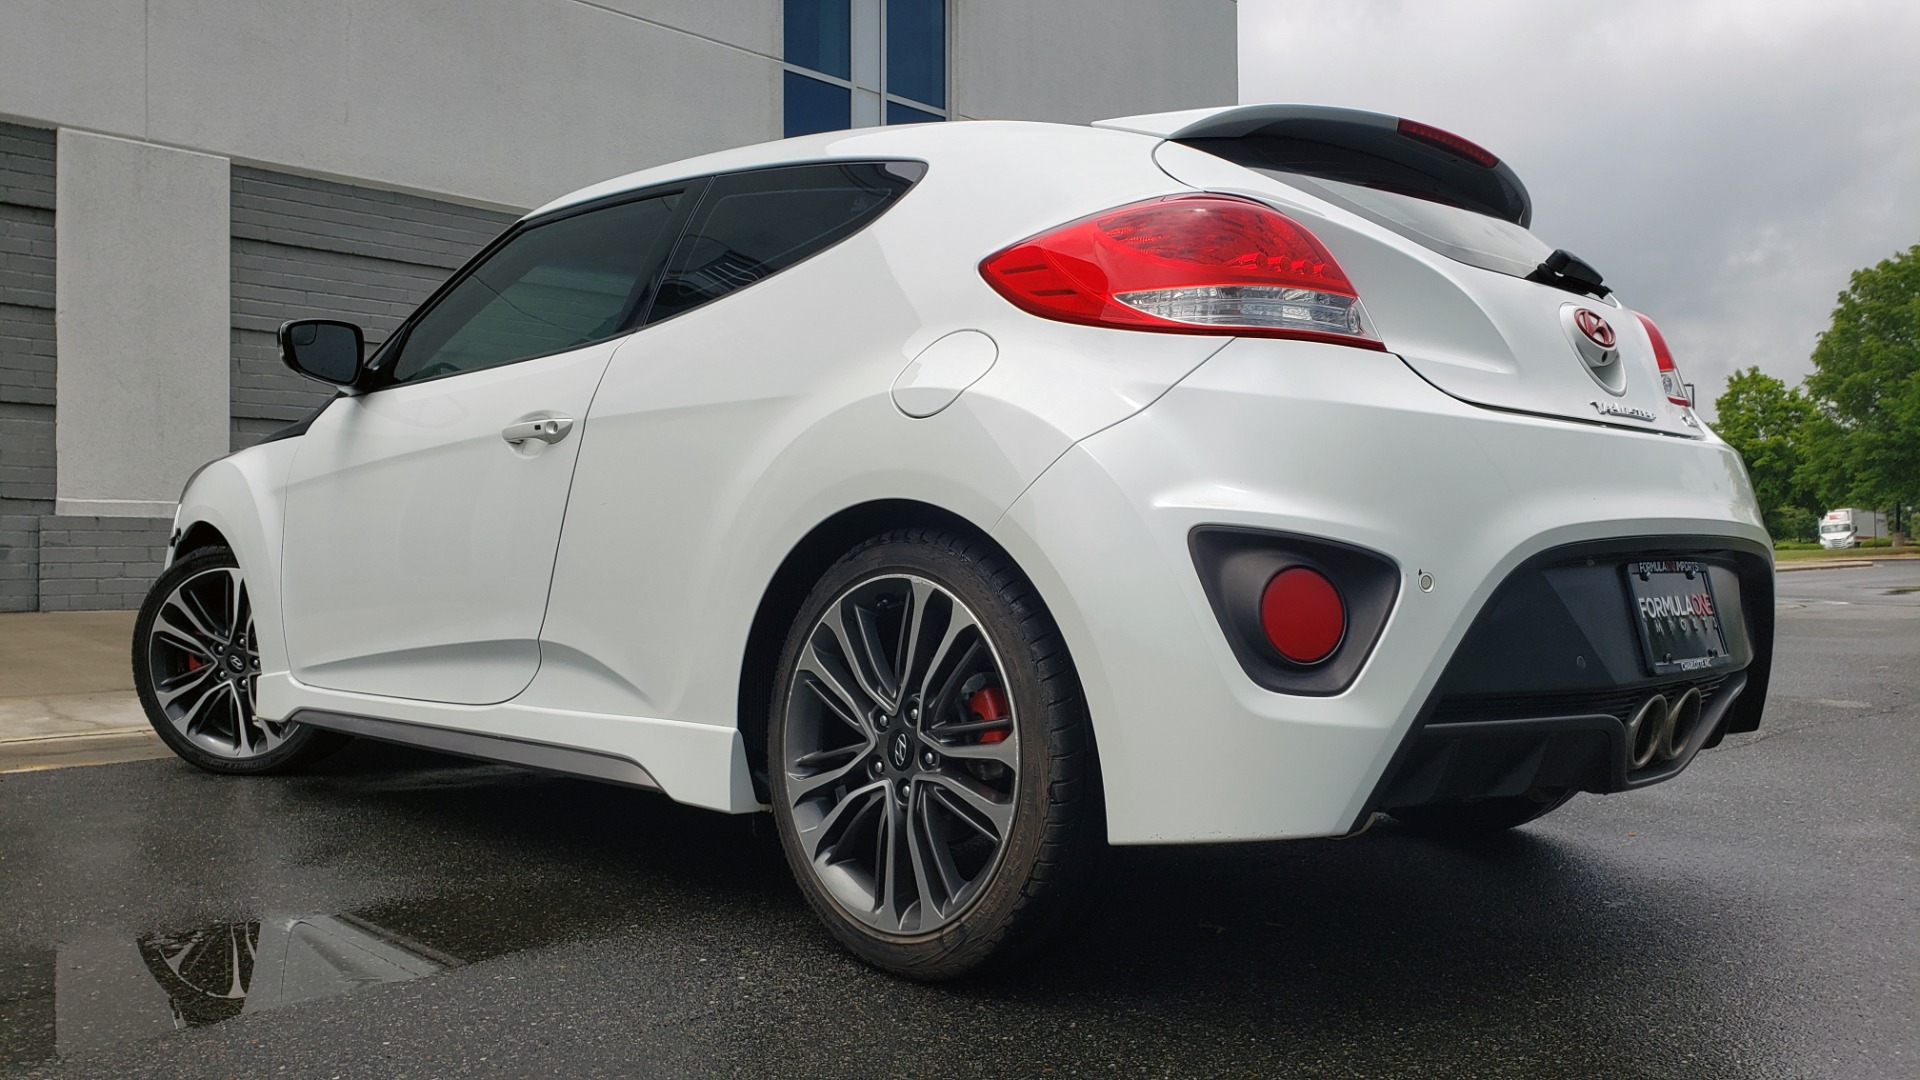 Used 2016 Hyundai VELOSTER 1.6L TURBO / 7-SPD ATUO / 3DR COUPE / NAV / PANO-ROOF for sale Sold at Formula Imports in Charlotte NC 28227 2